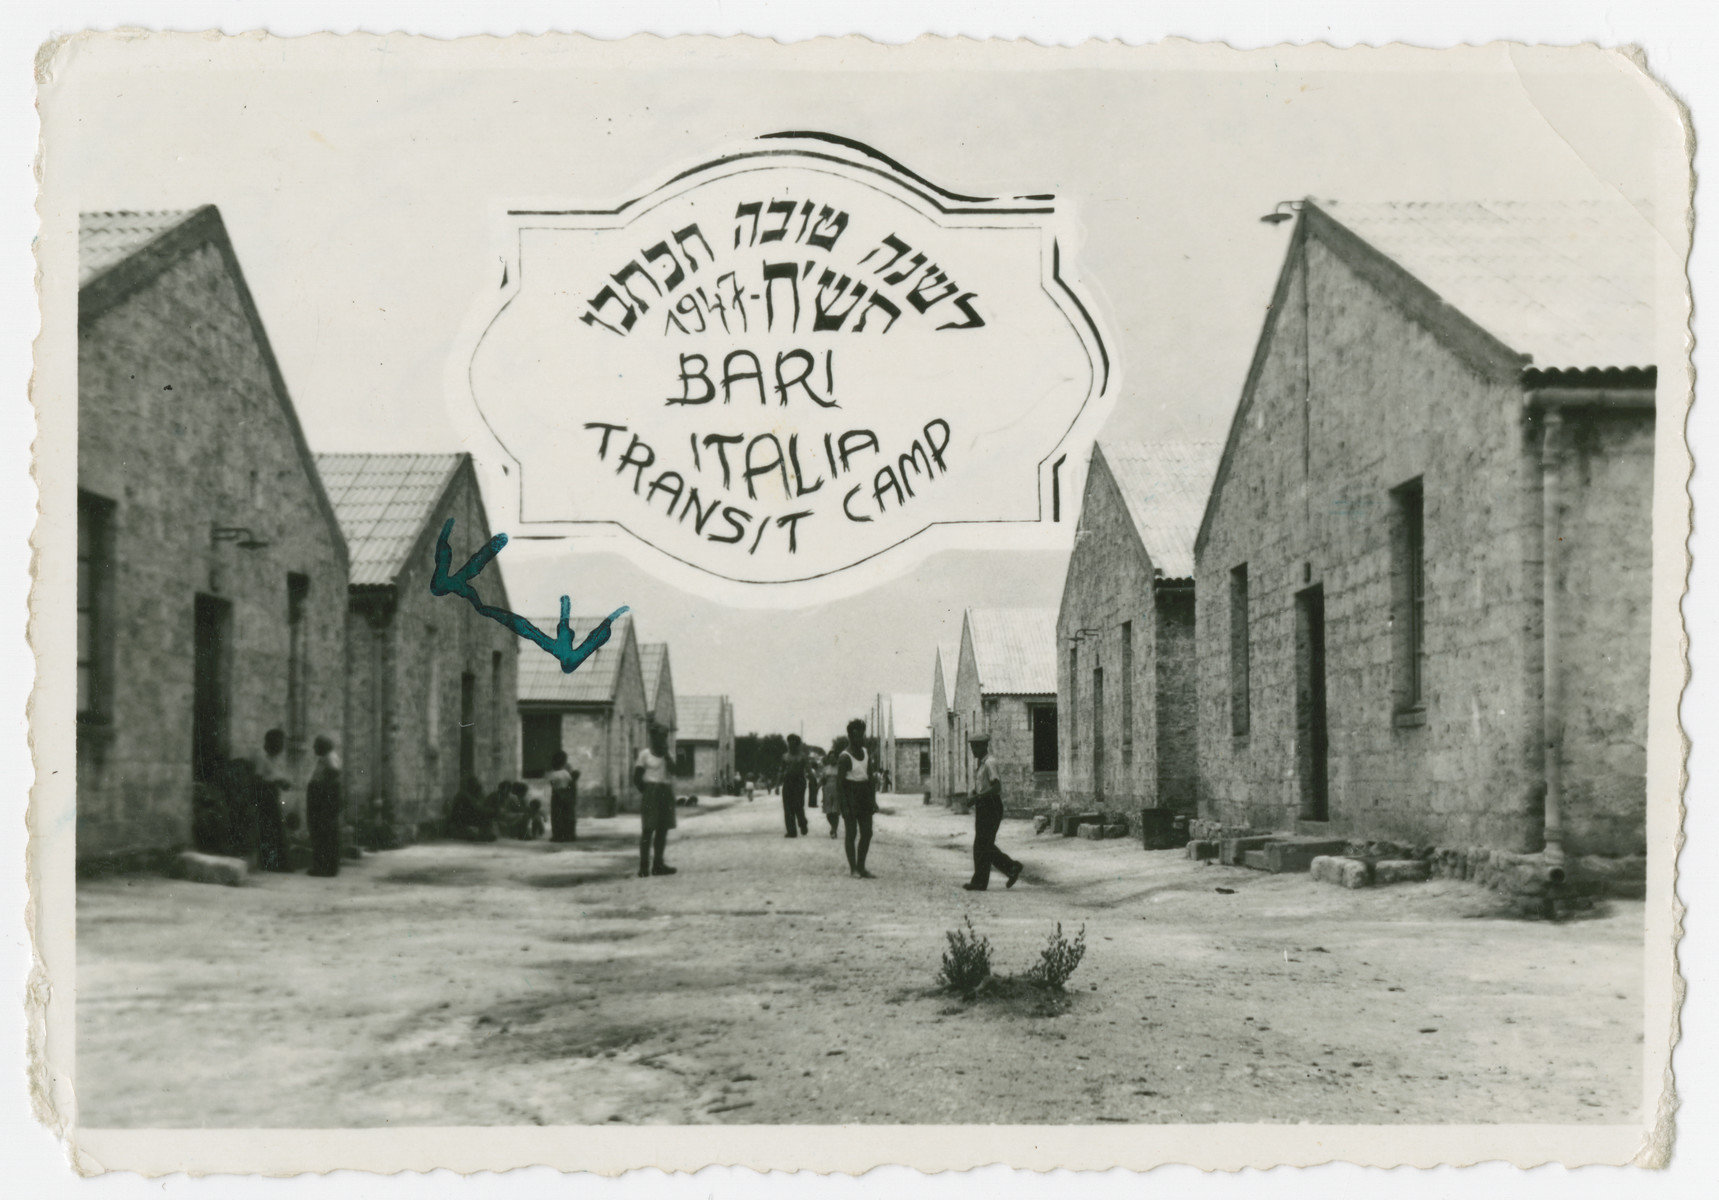 Jewish New Year's card depicting a view of the Bari DP camp.